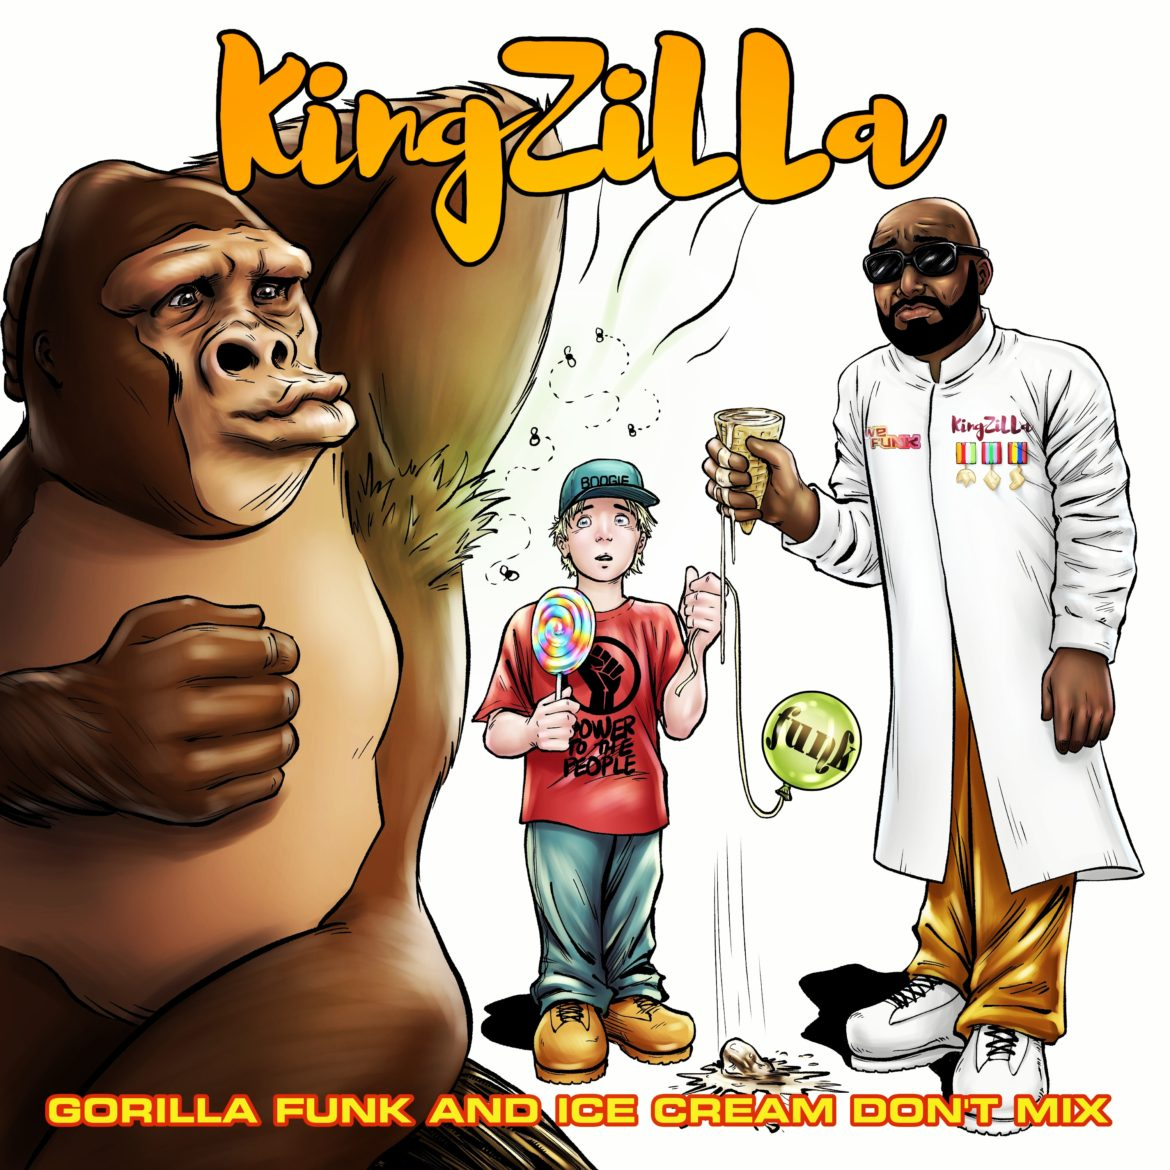 Helter Skelter by KingZiLLa, Blake hits it with deep tones of DUB-FUNK